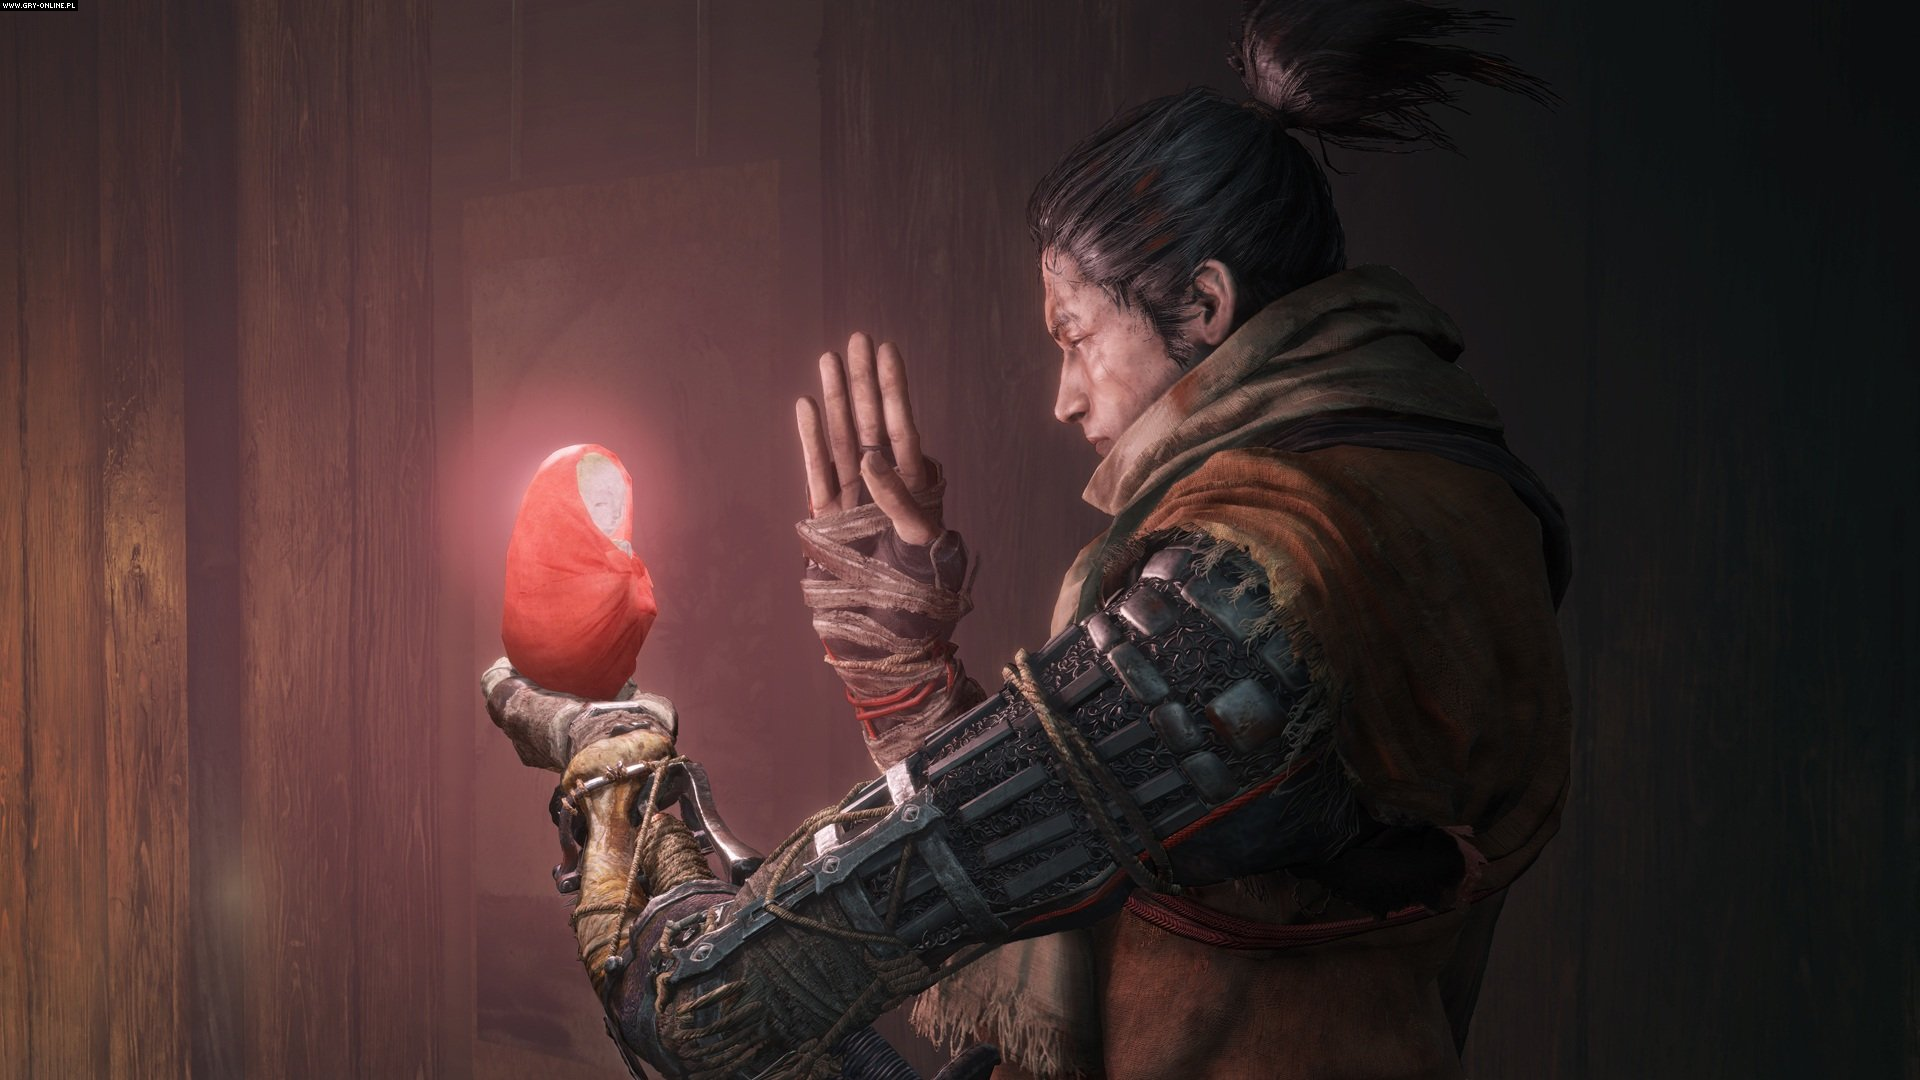 Sekiro: Shadows Die Twice PC, PS4, XONE Gry Screen 10/29, FromSoftware, Activision Blizzard